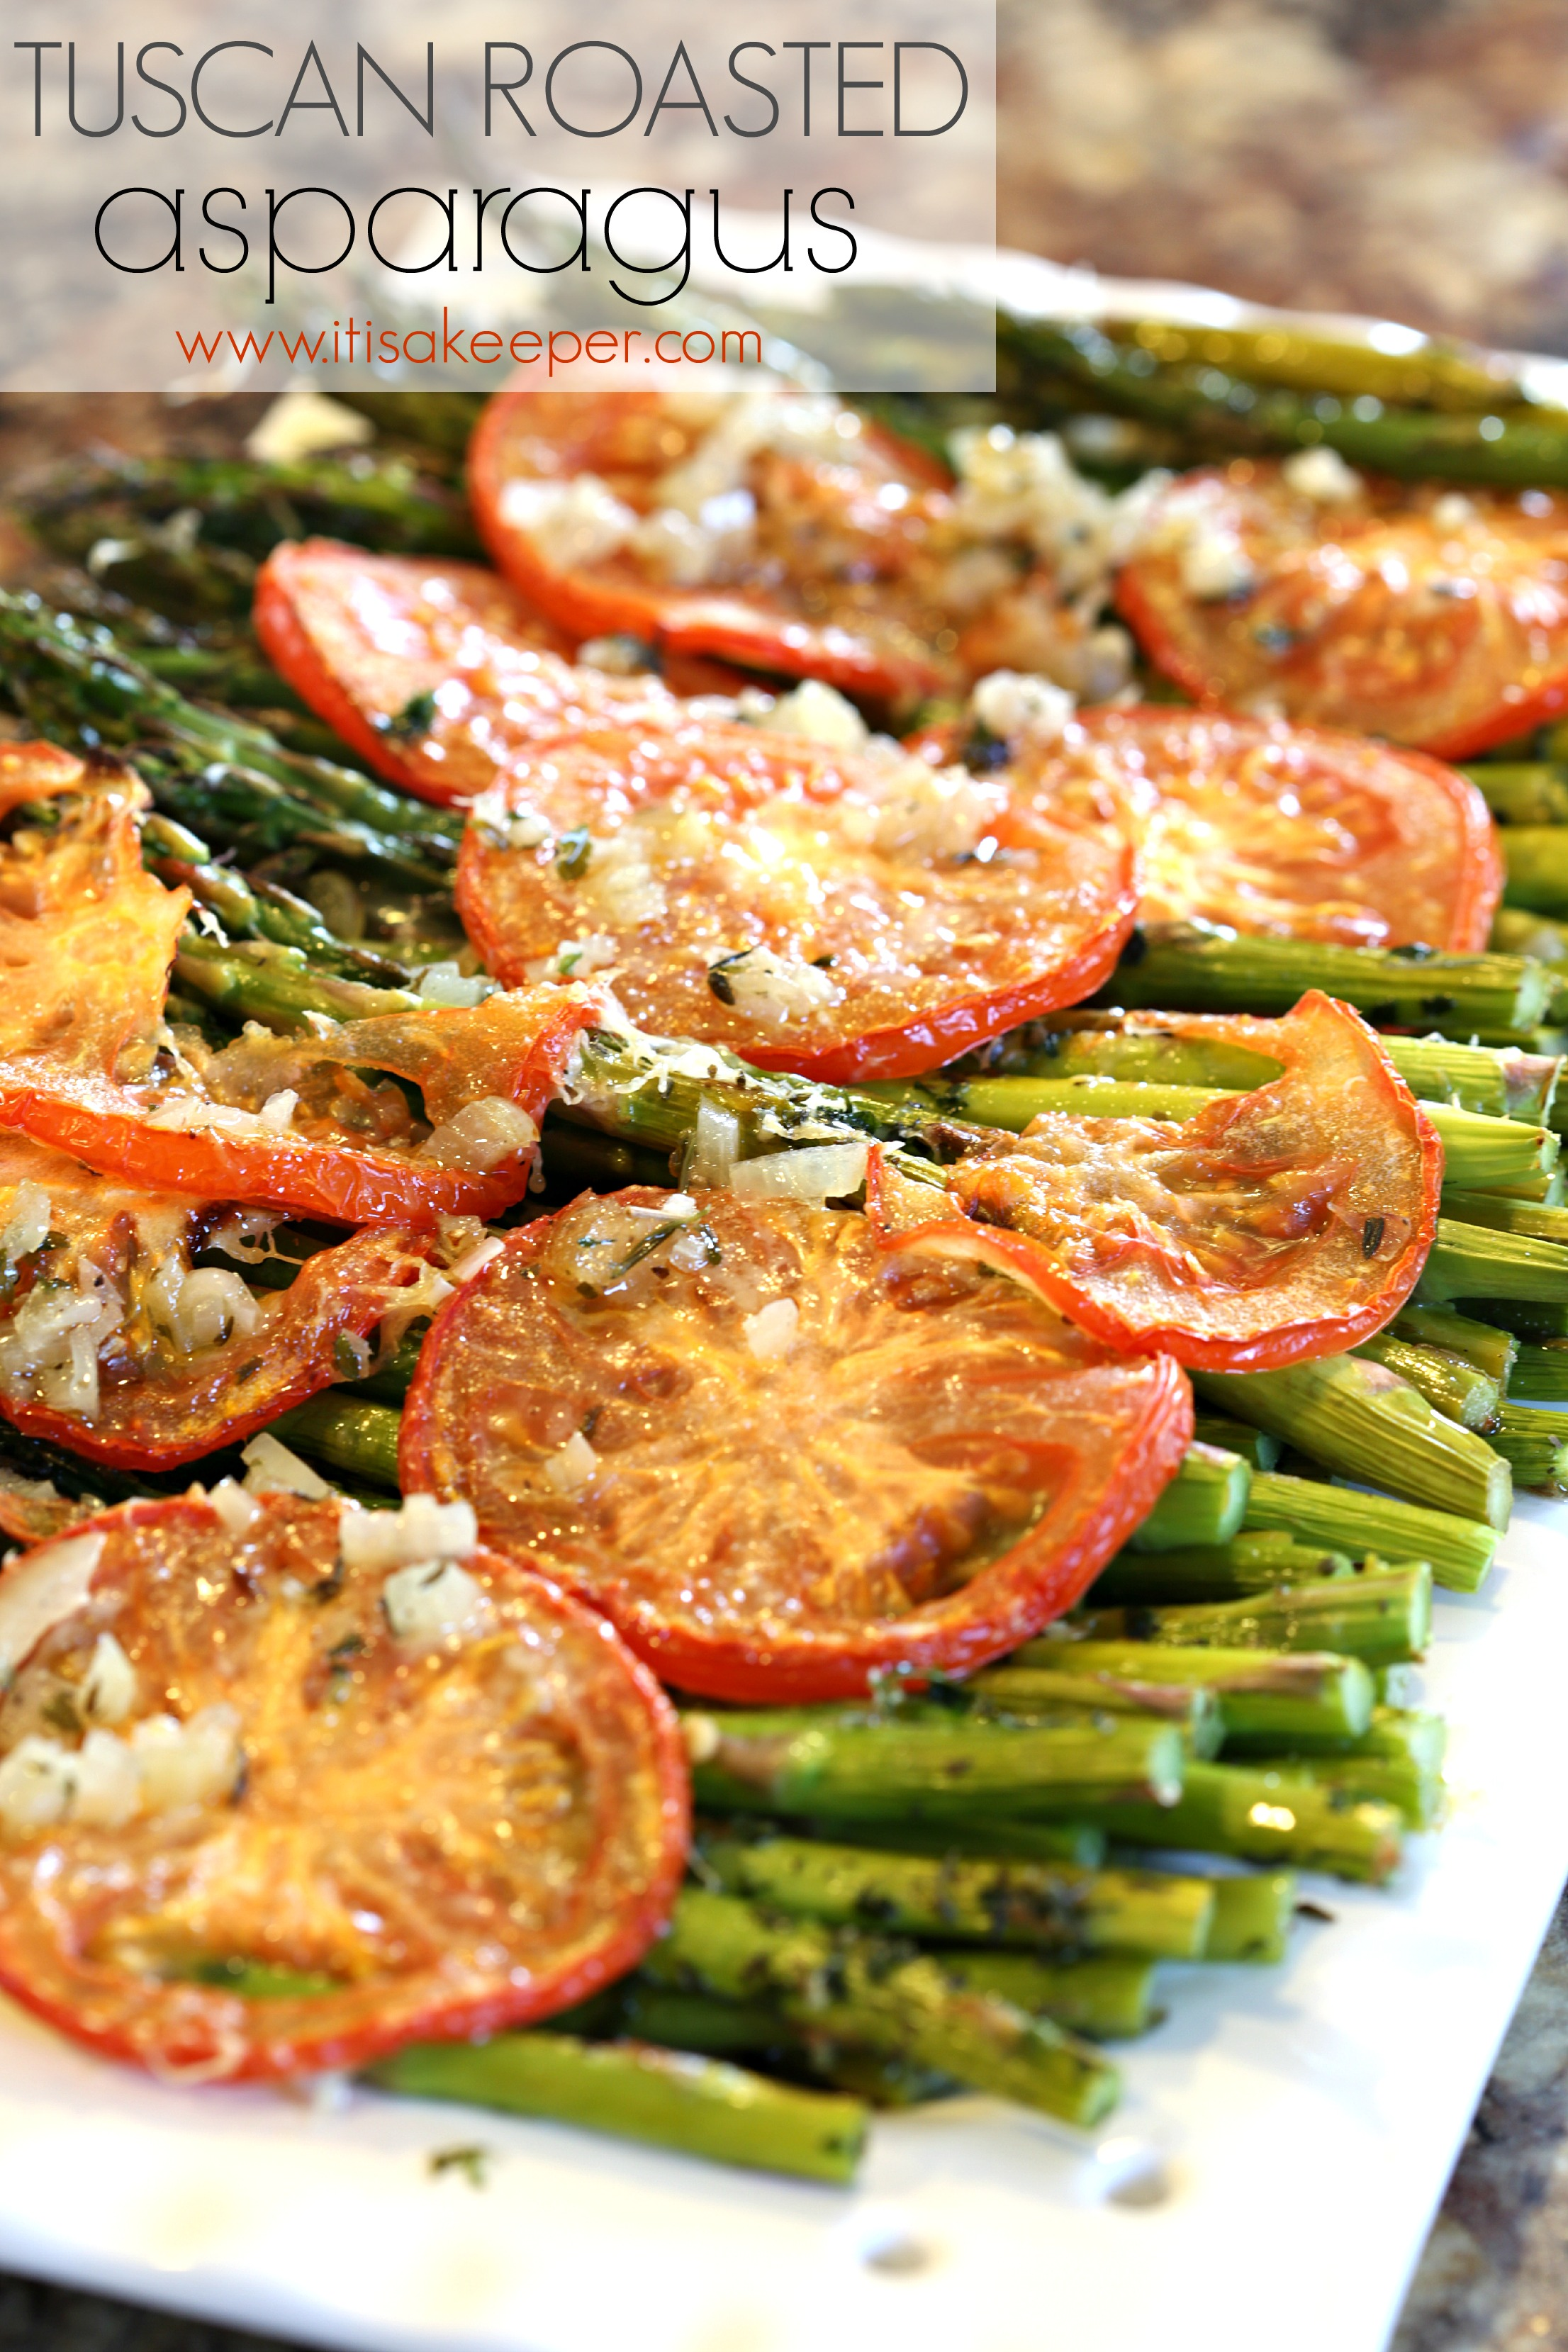 Tuscan Roasted Asparagus | It is a Keeper